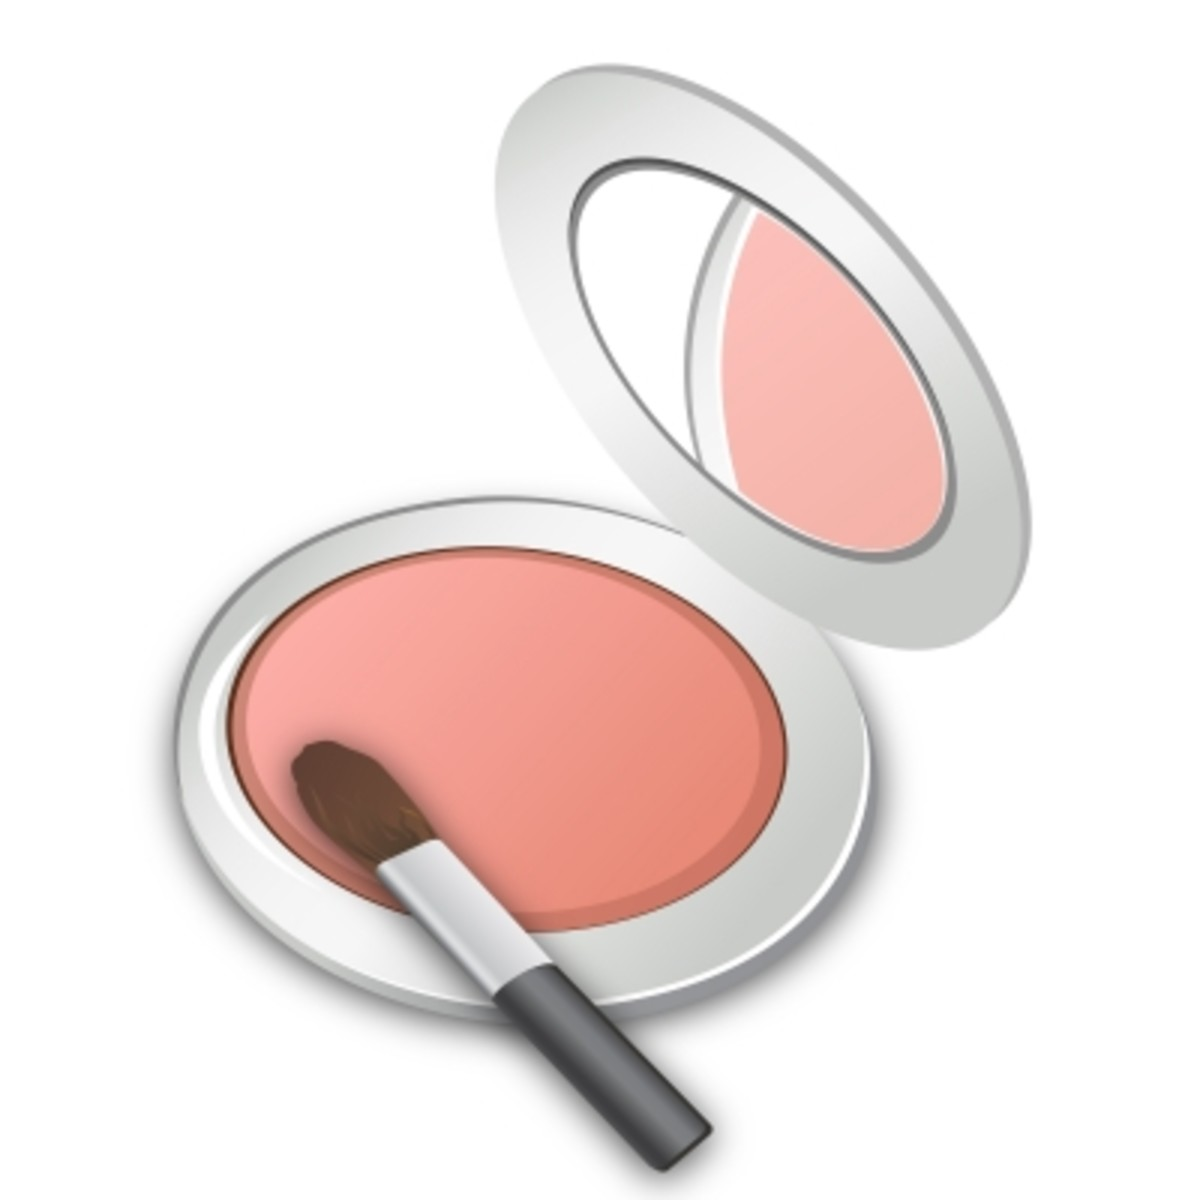 for a rosy, dewy look to makeup, creme blush is right on trend and easy to apply.